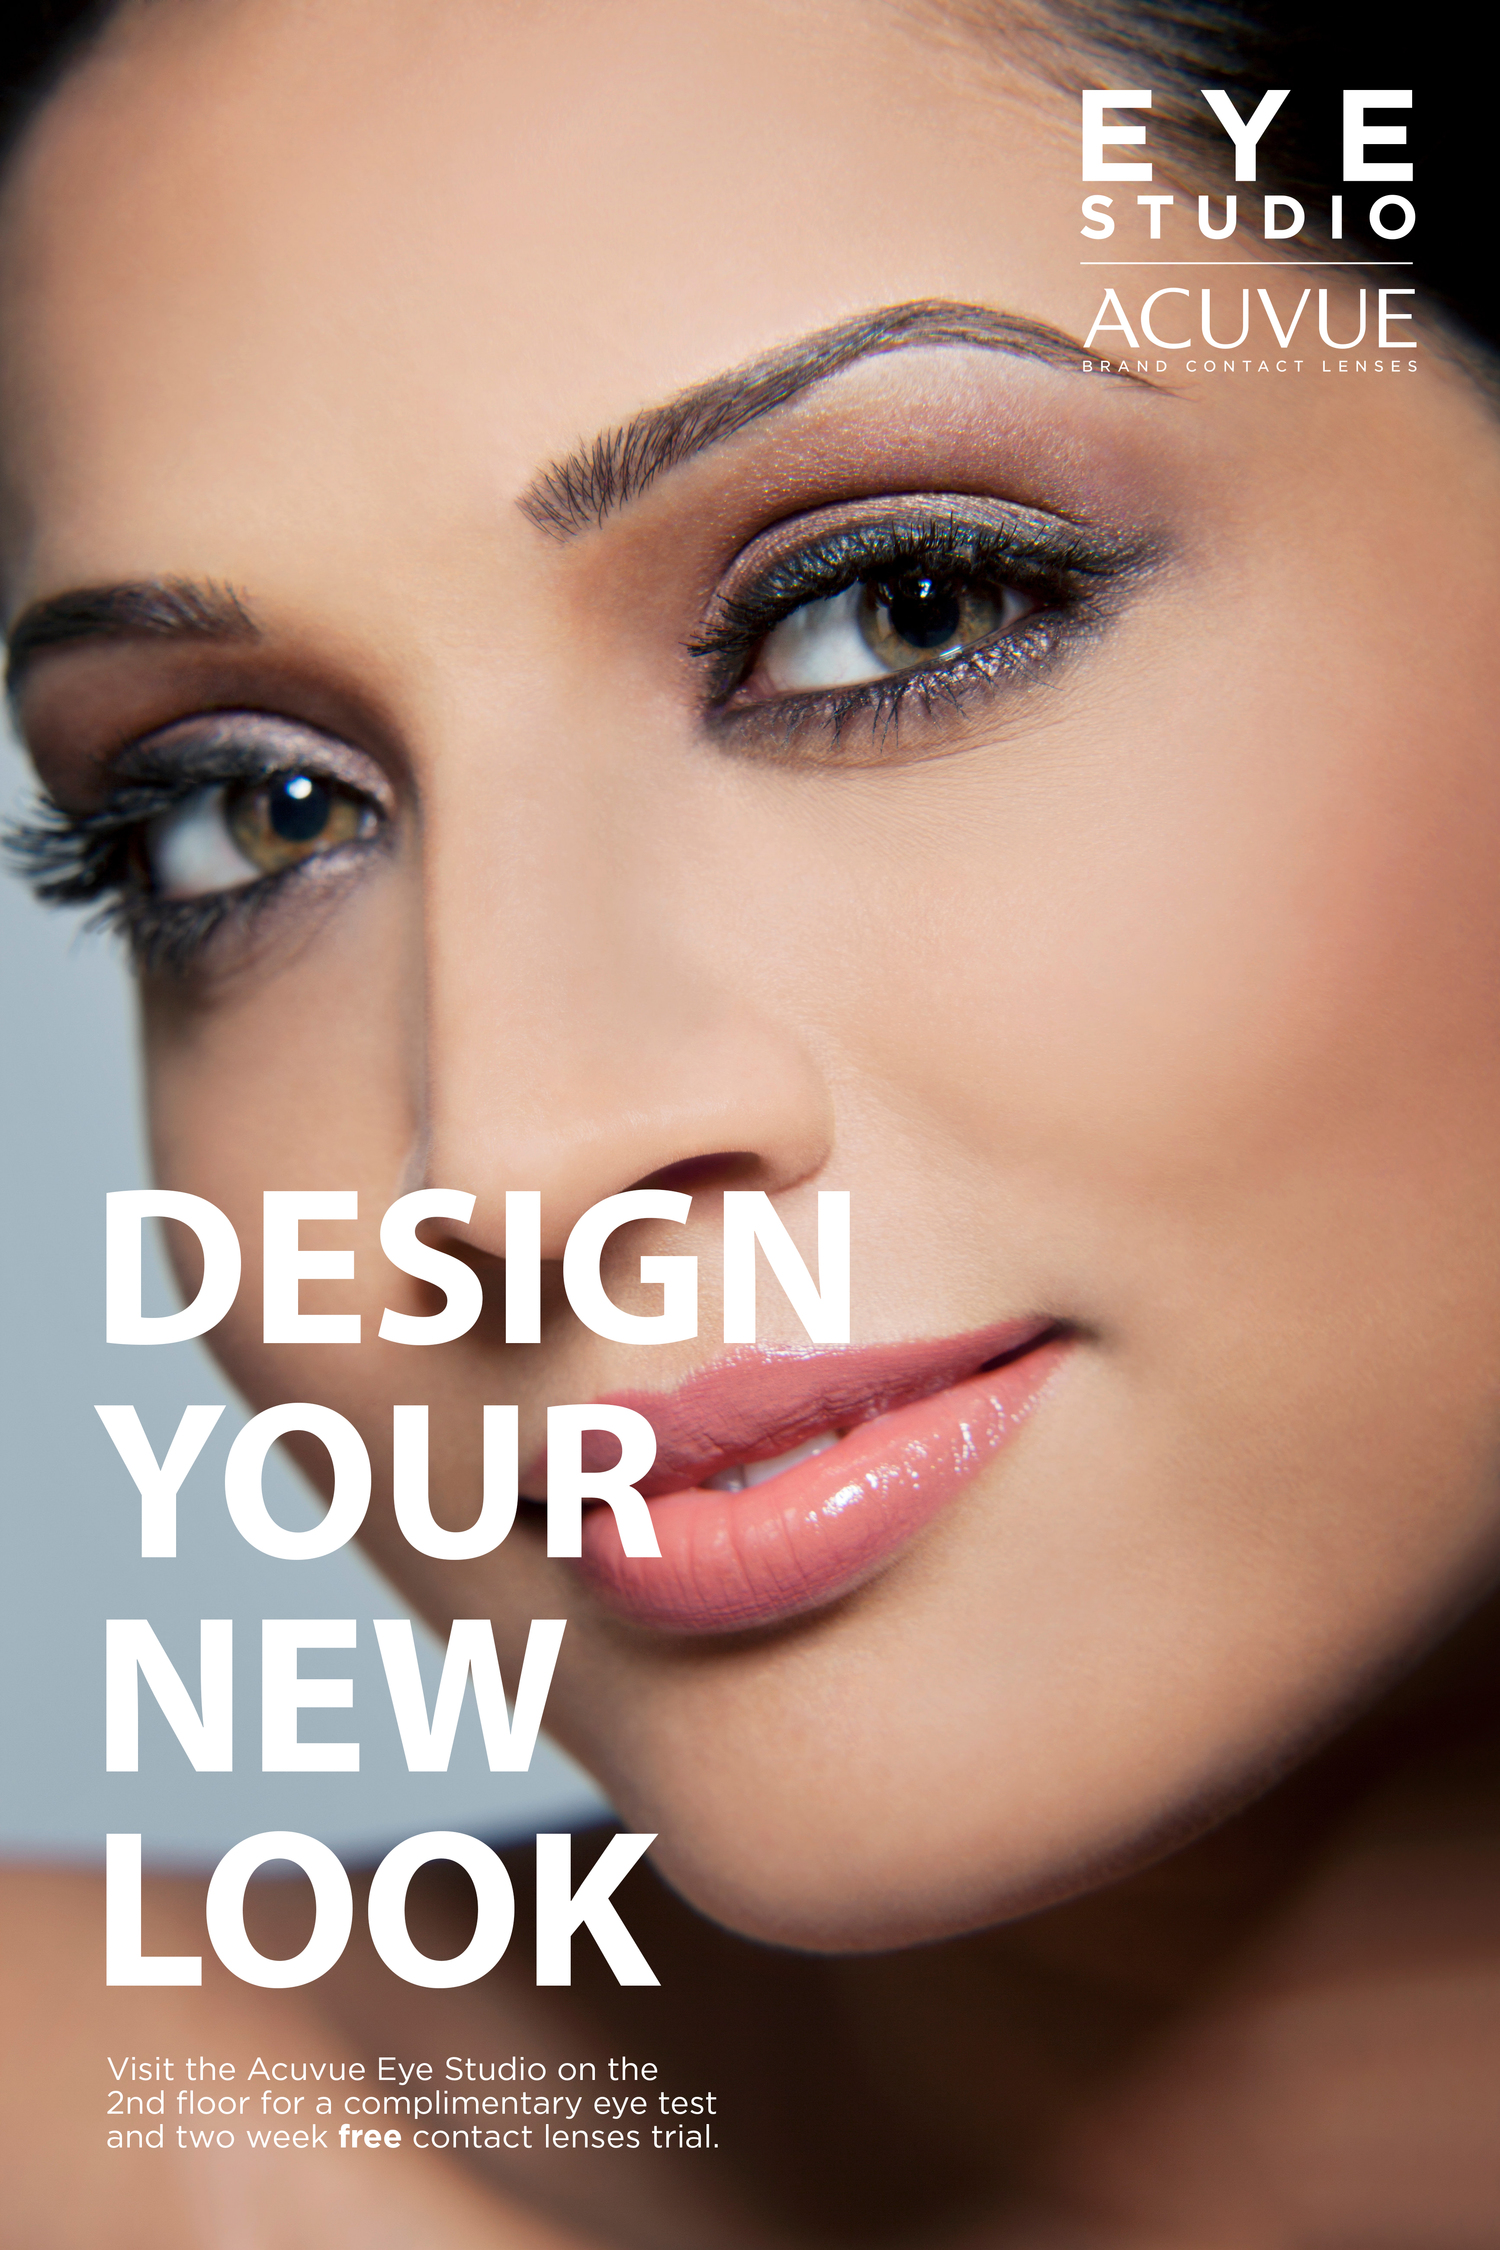 Acuvue india pop up retail shop moriarty creative prev next nvjuhfo Image collections